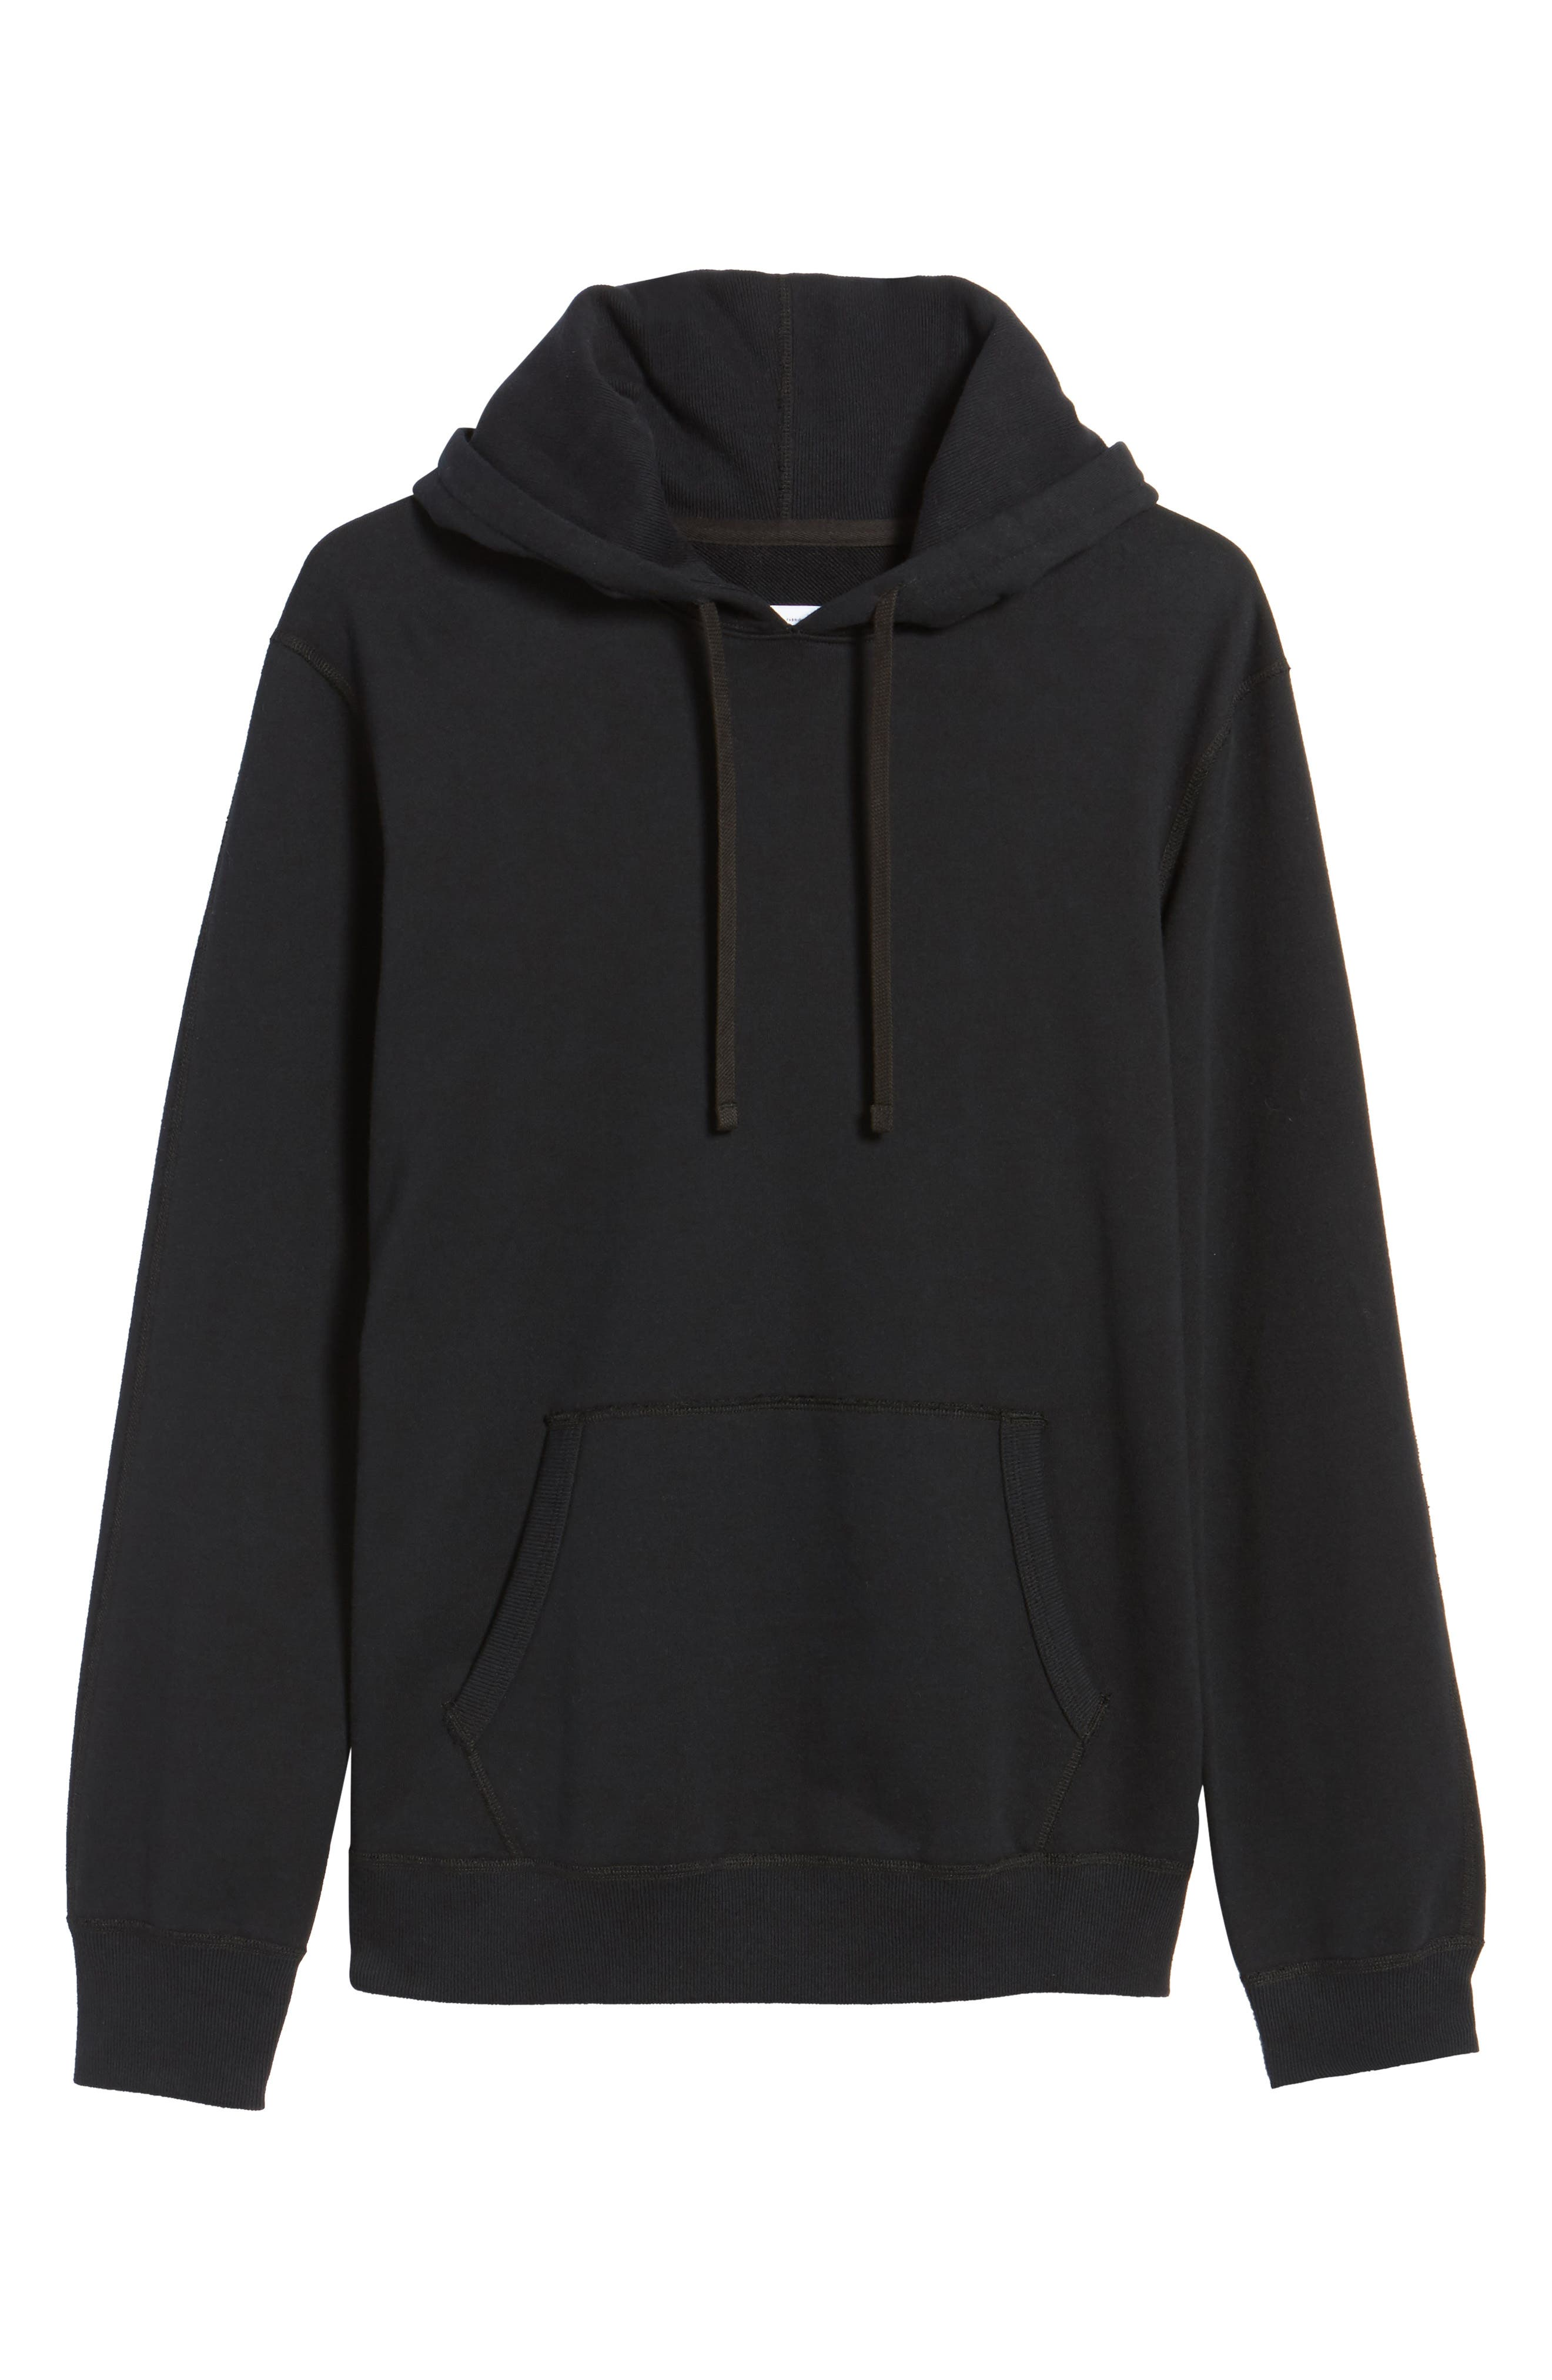 French Terry Hoodie,                             Alternate thumbnail 6, color,                             001